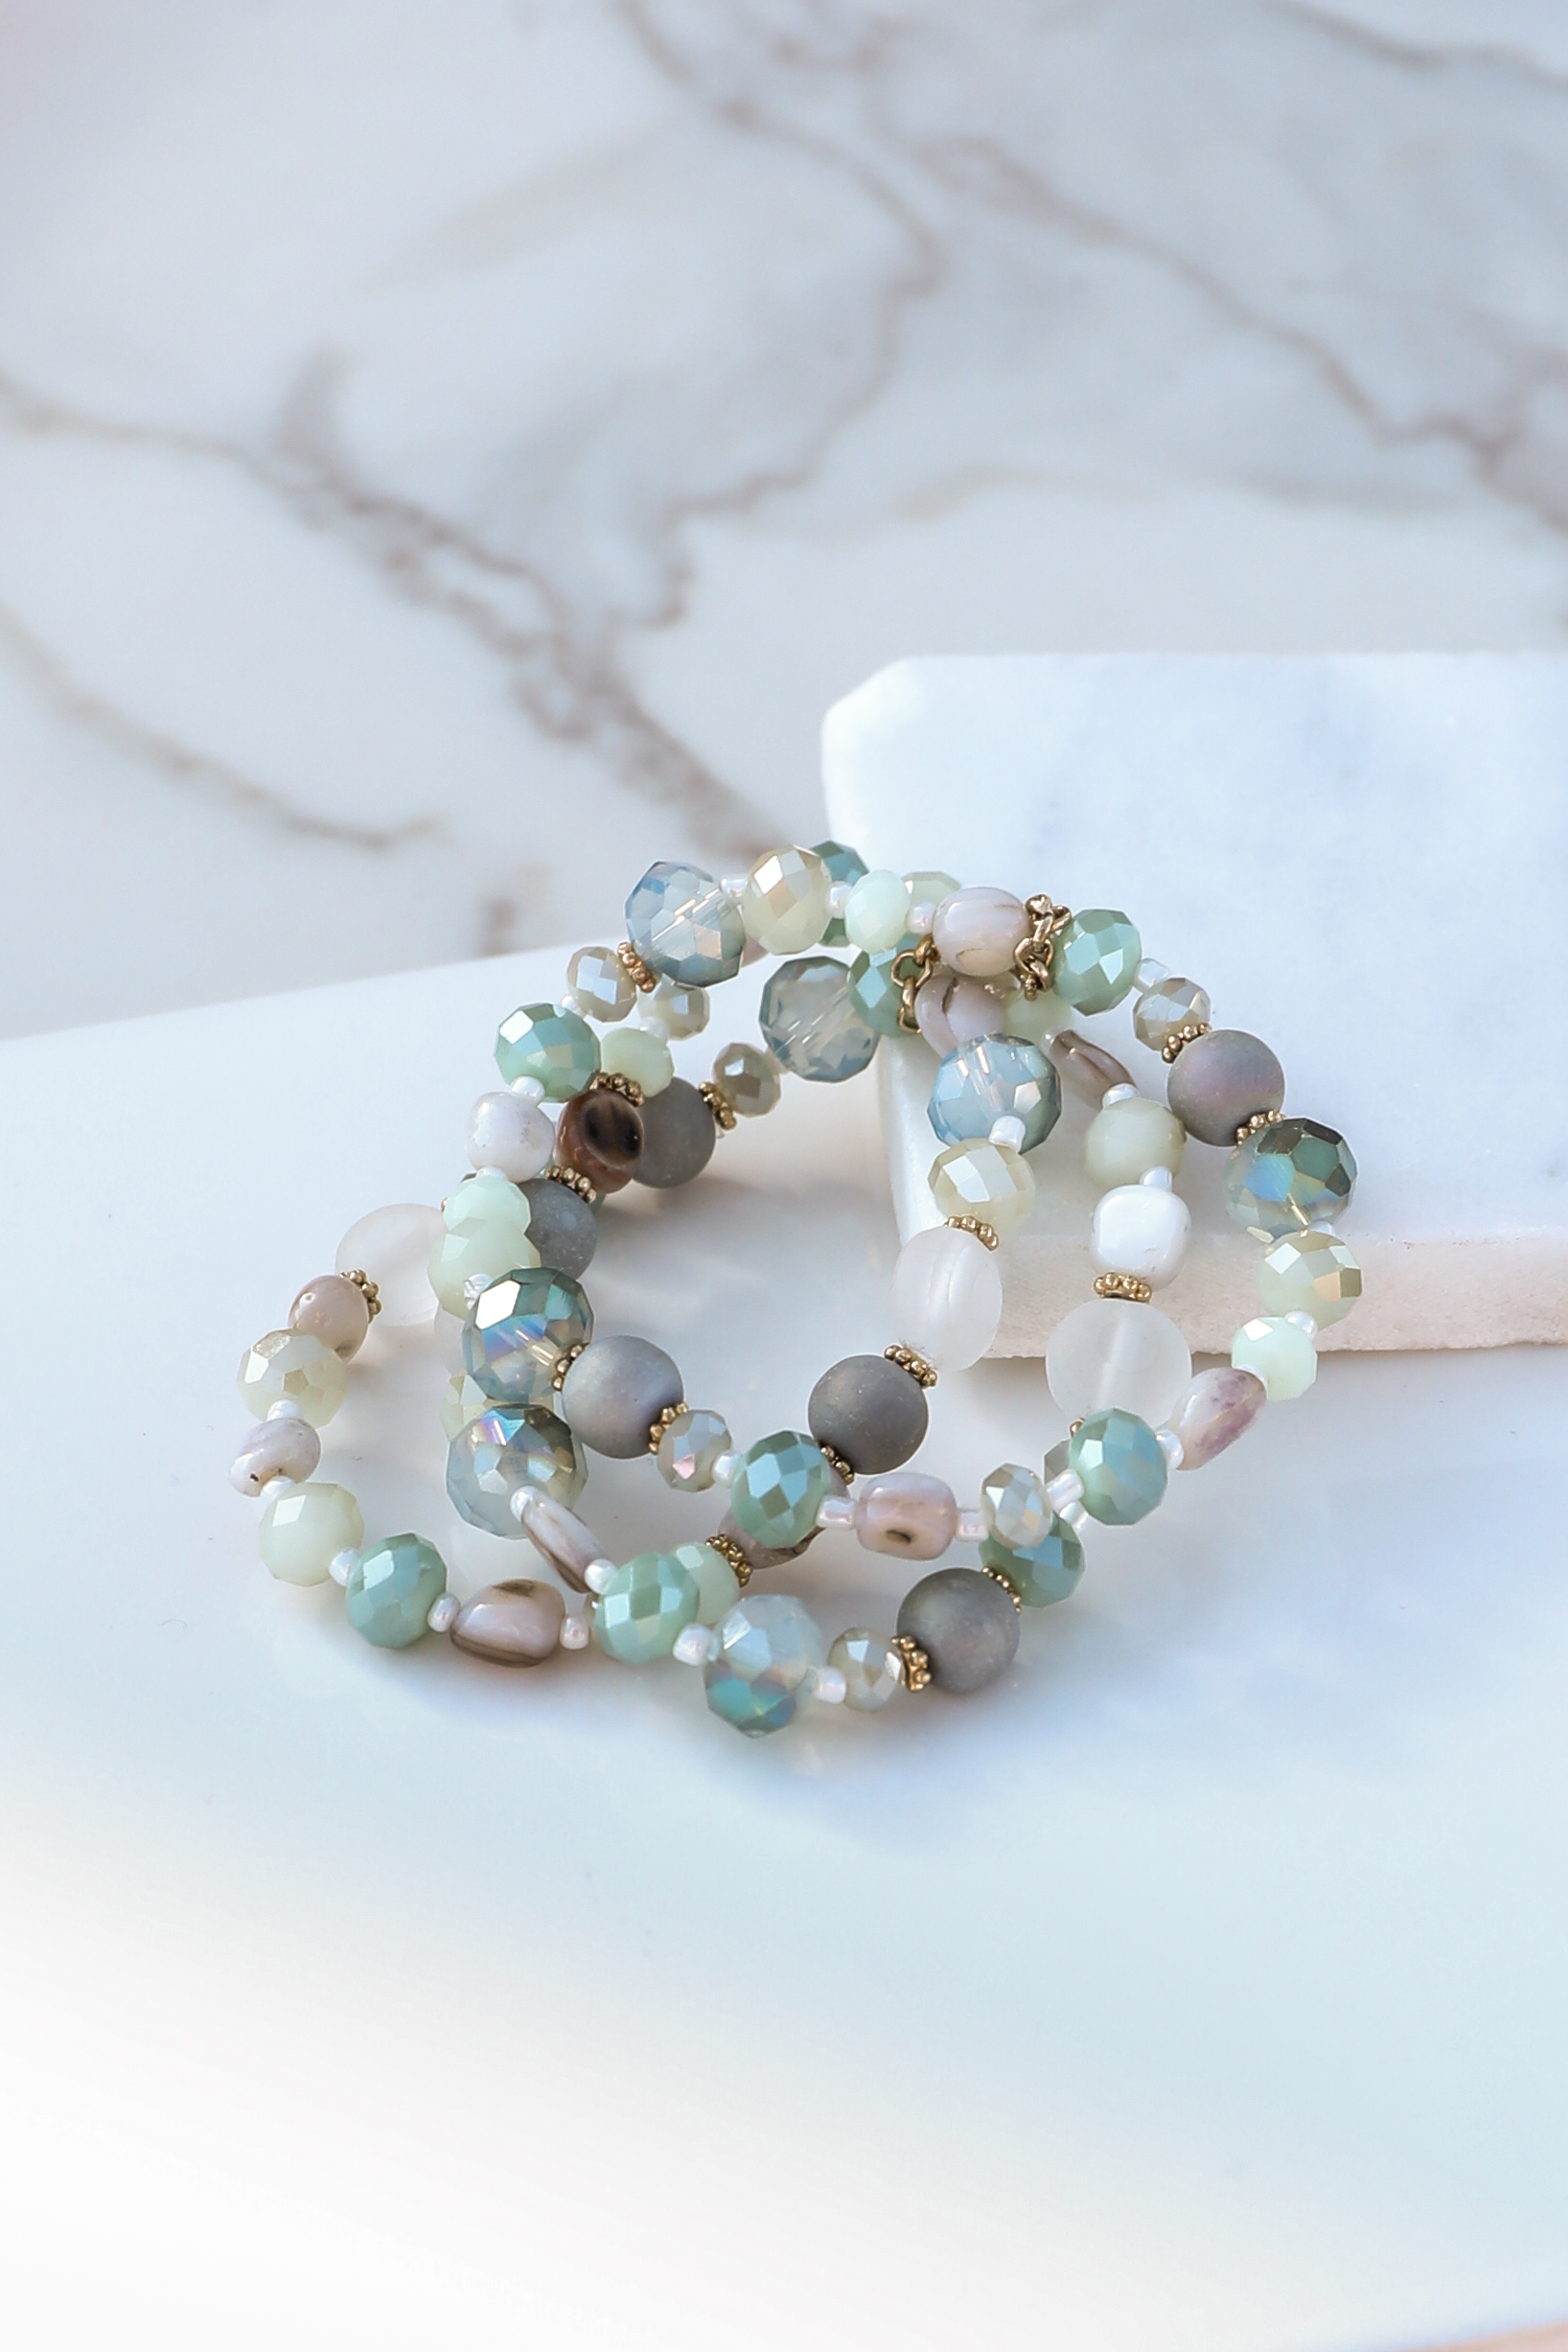 Mint Green and Pearl Beaded Bracelet Set with Gold Accents